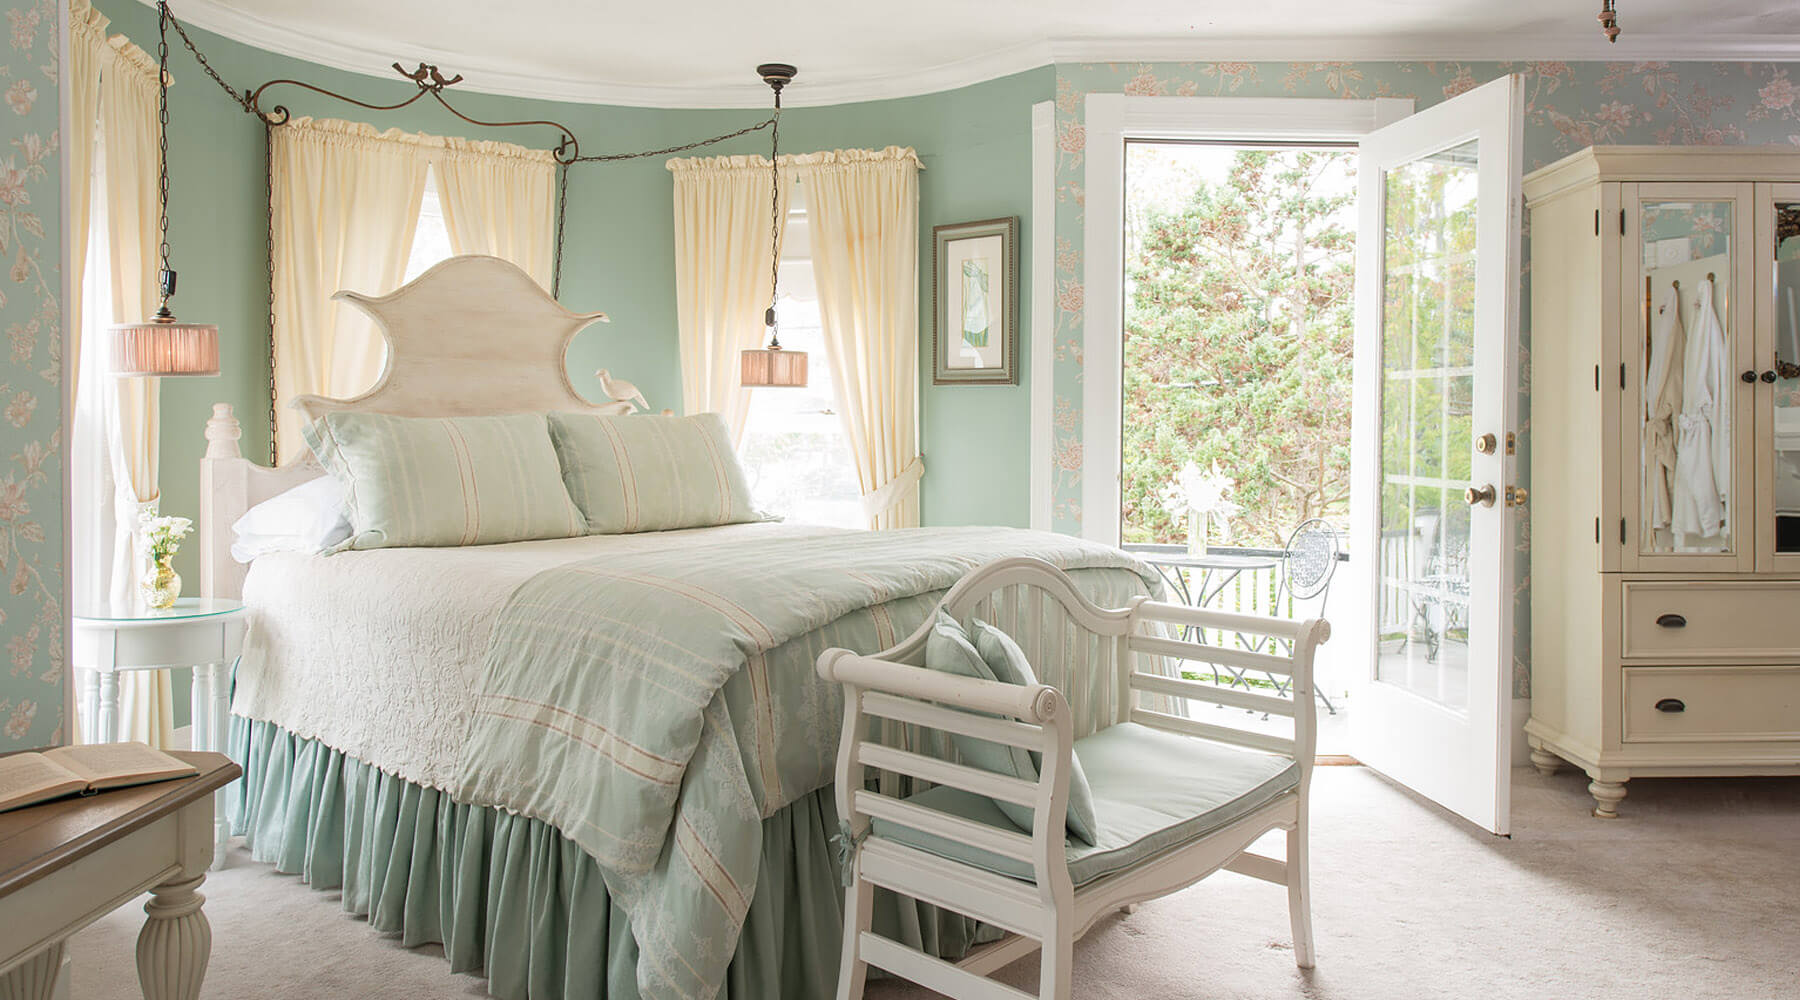 Guest room with private balcony on getaway from Raleigh